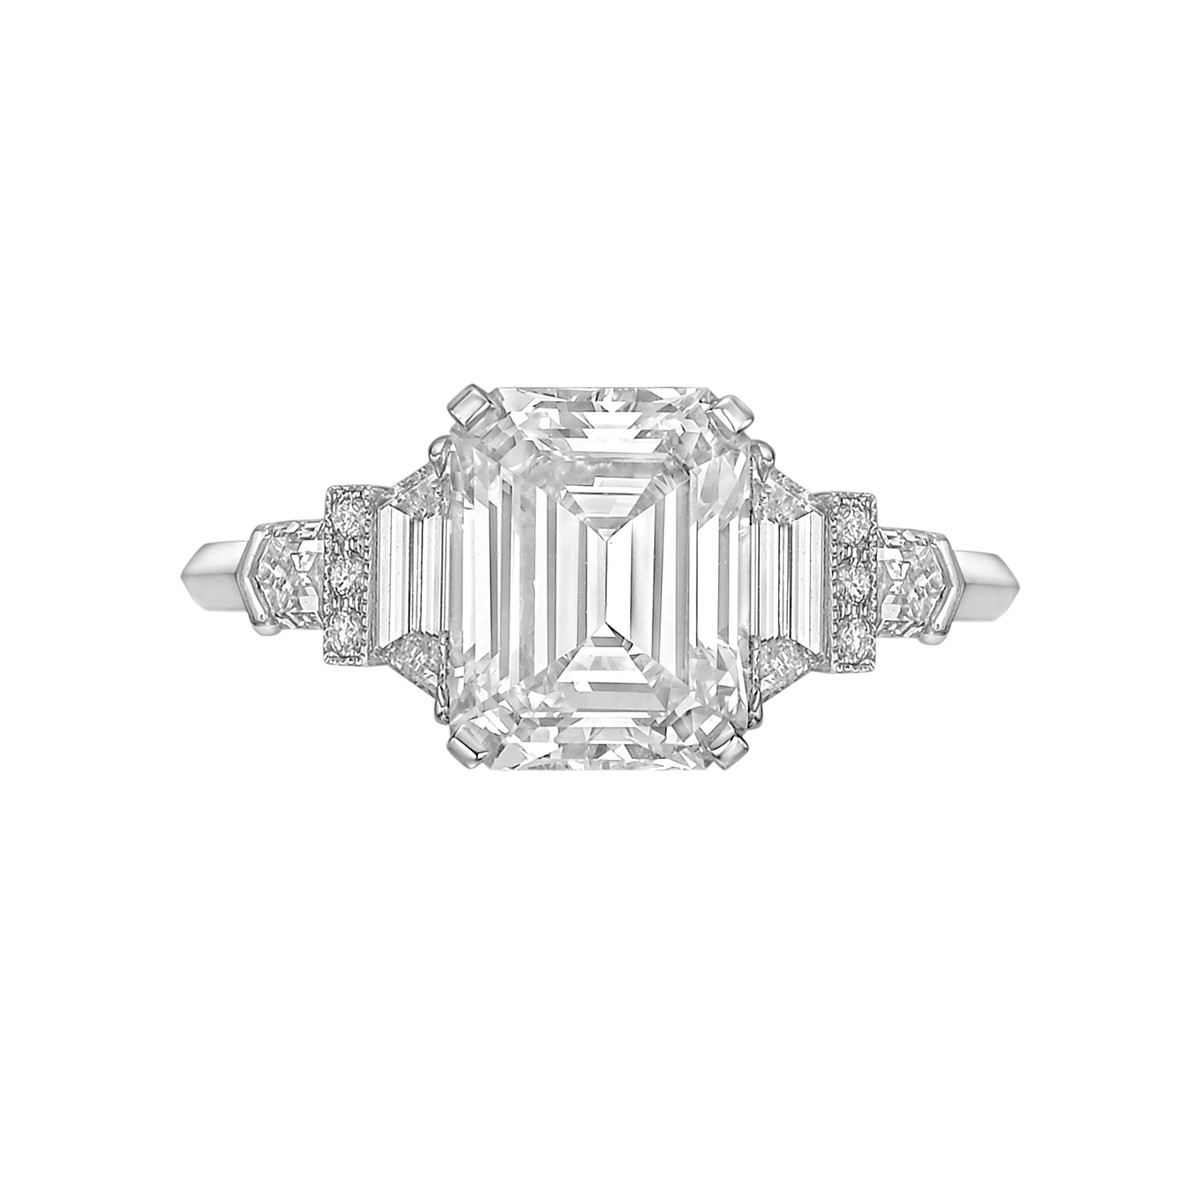 3.11 Carat Emerald-Cut Diamond Ring